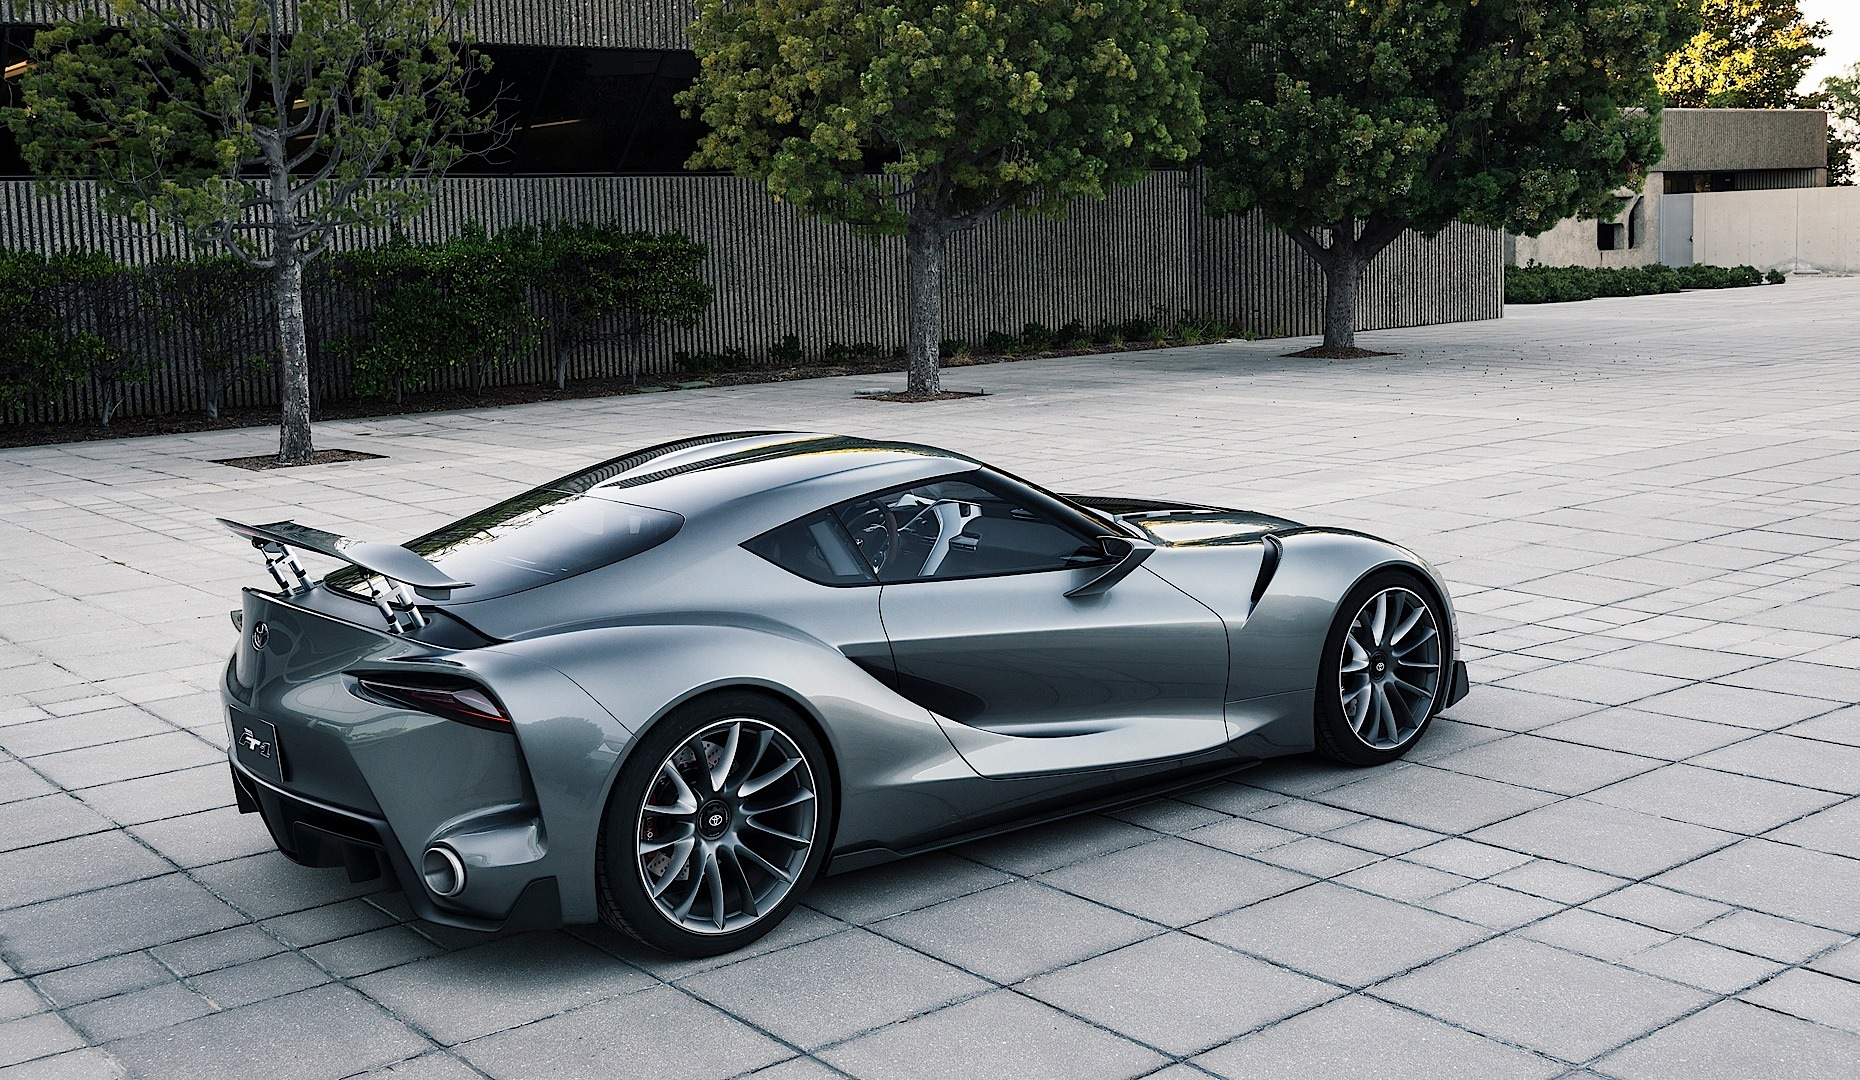 Land Rover Sport >> Toyota Reveals New FT-1 Graphite Concept at Pebble Beach ...